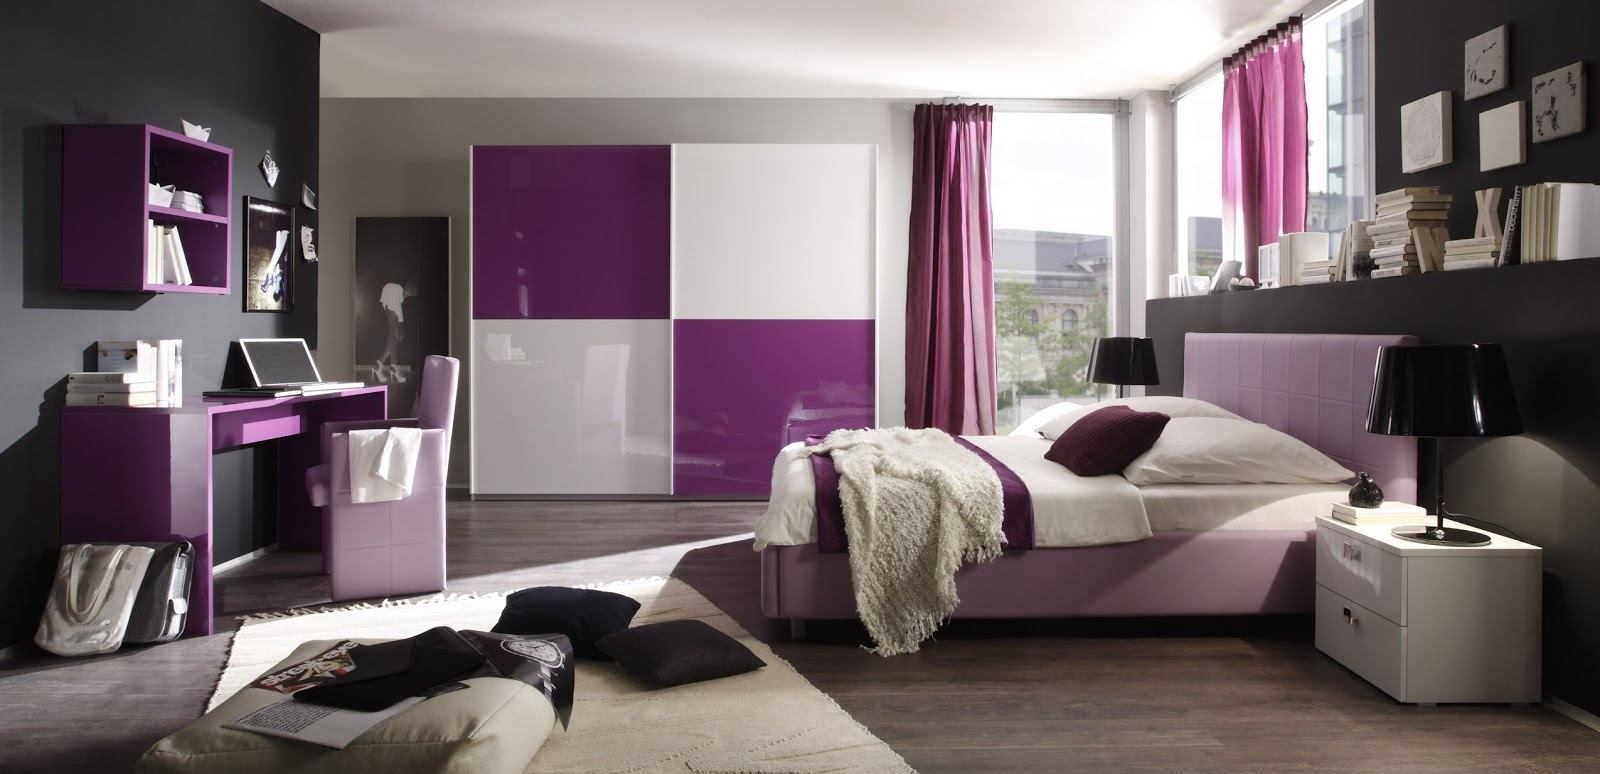 Dormitorios para chicas en color morado dormitorios for Chambre a coucher usa